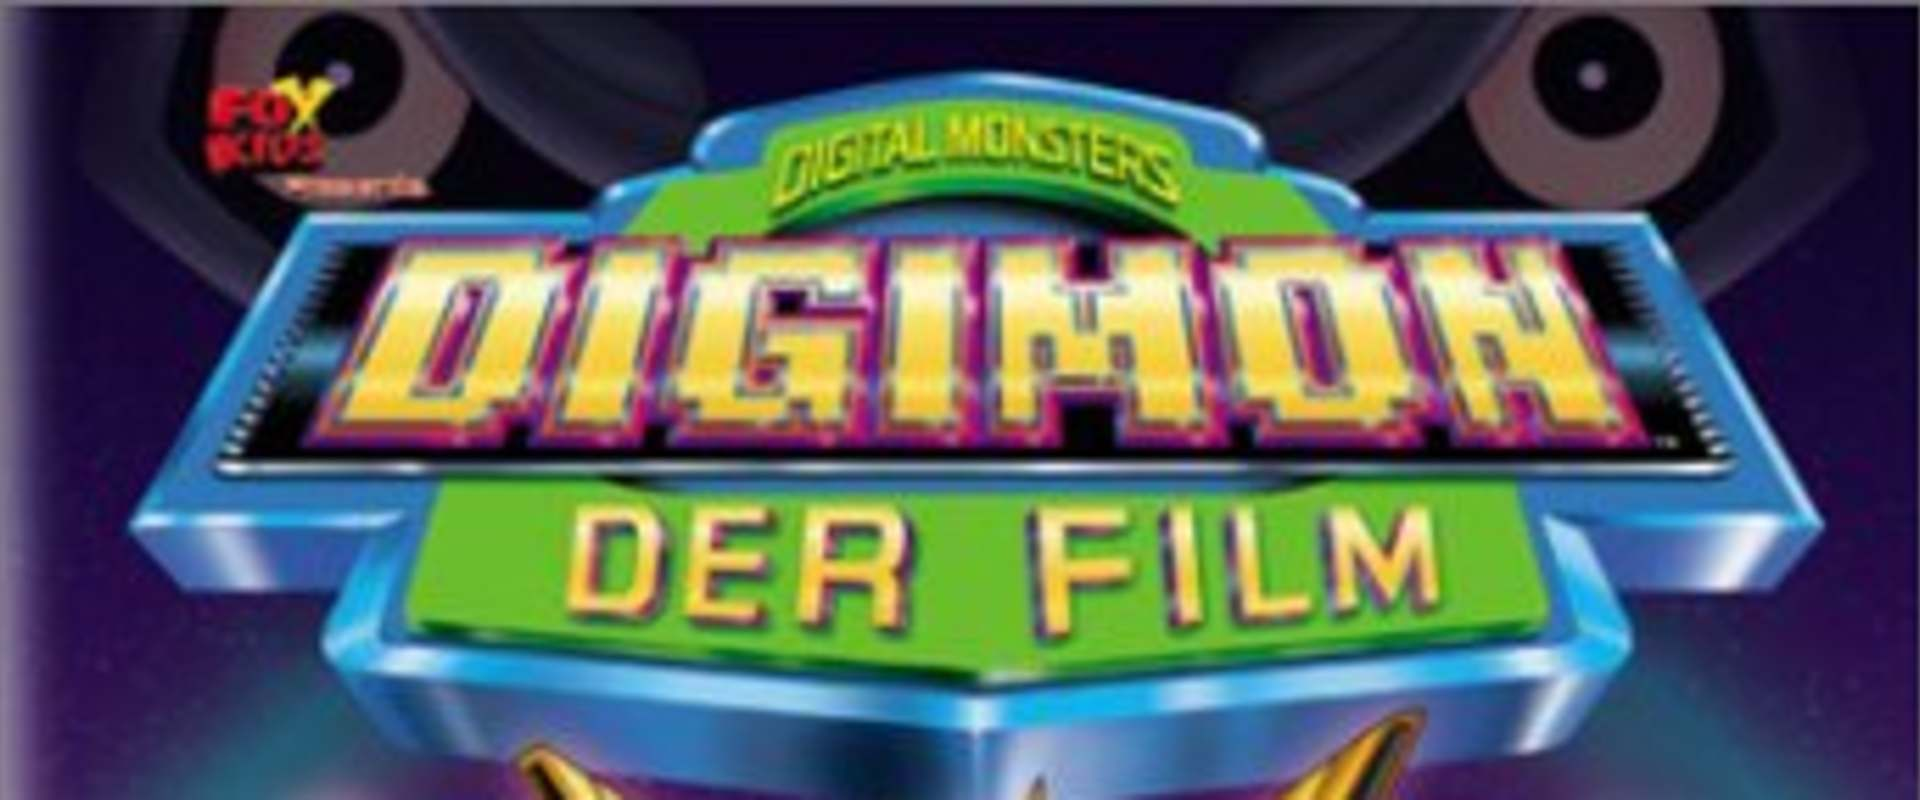 Digimon: The Movie background 2